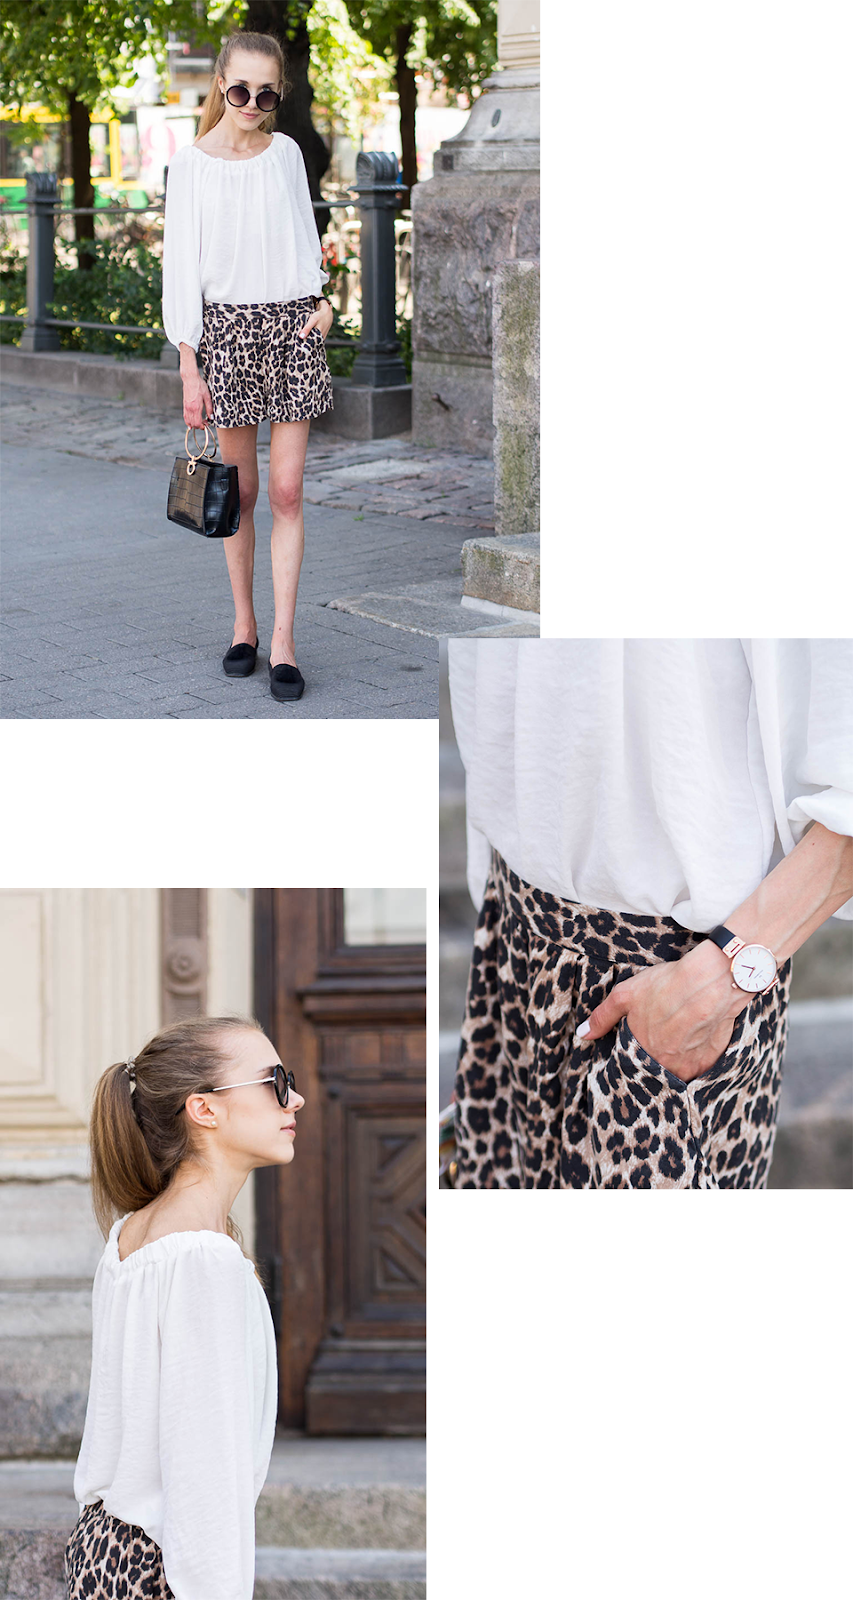 fashion-blogger-summer-outfit-inspiration-leopard-shorts